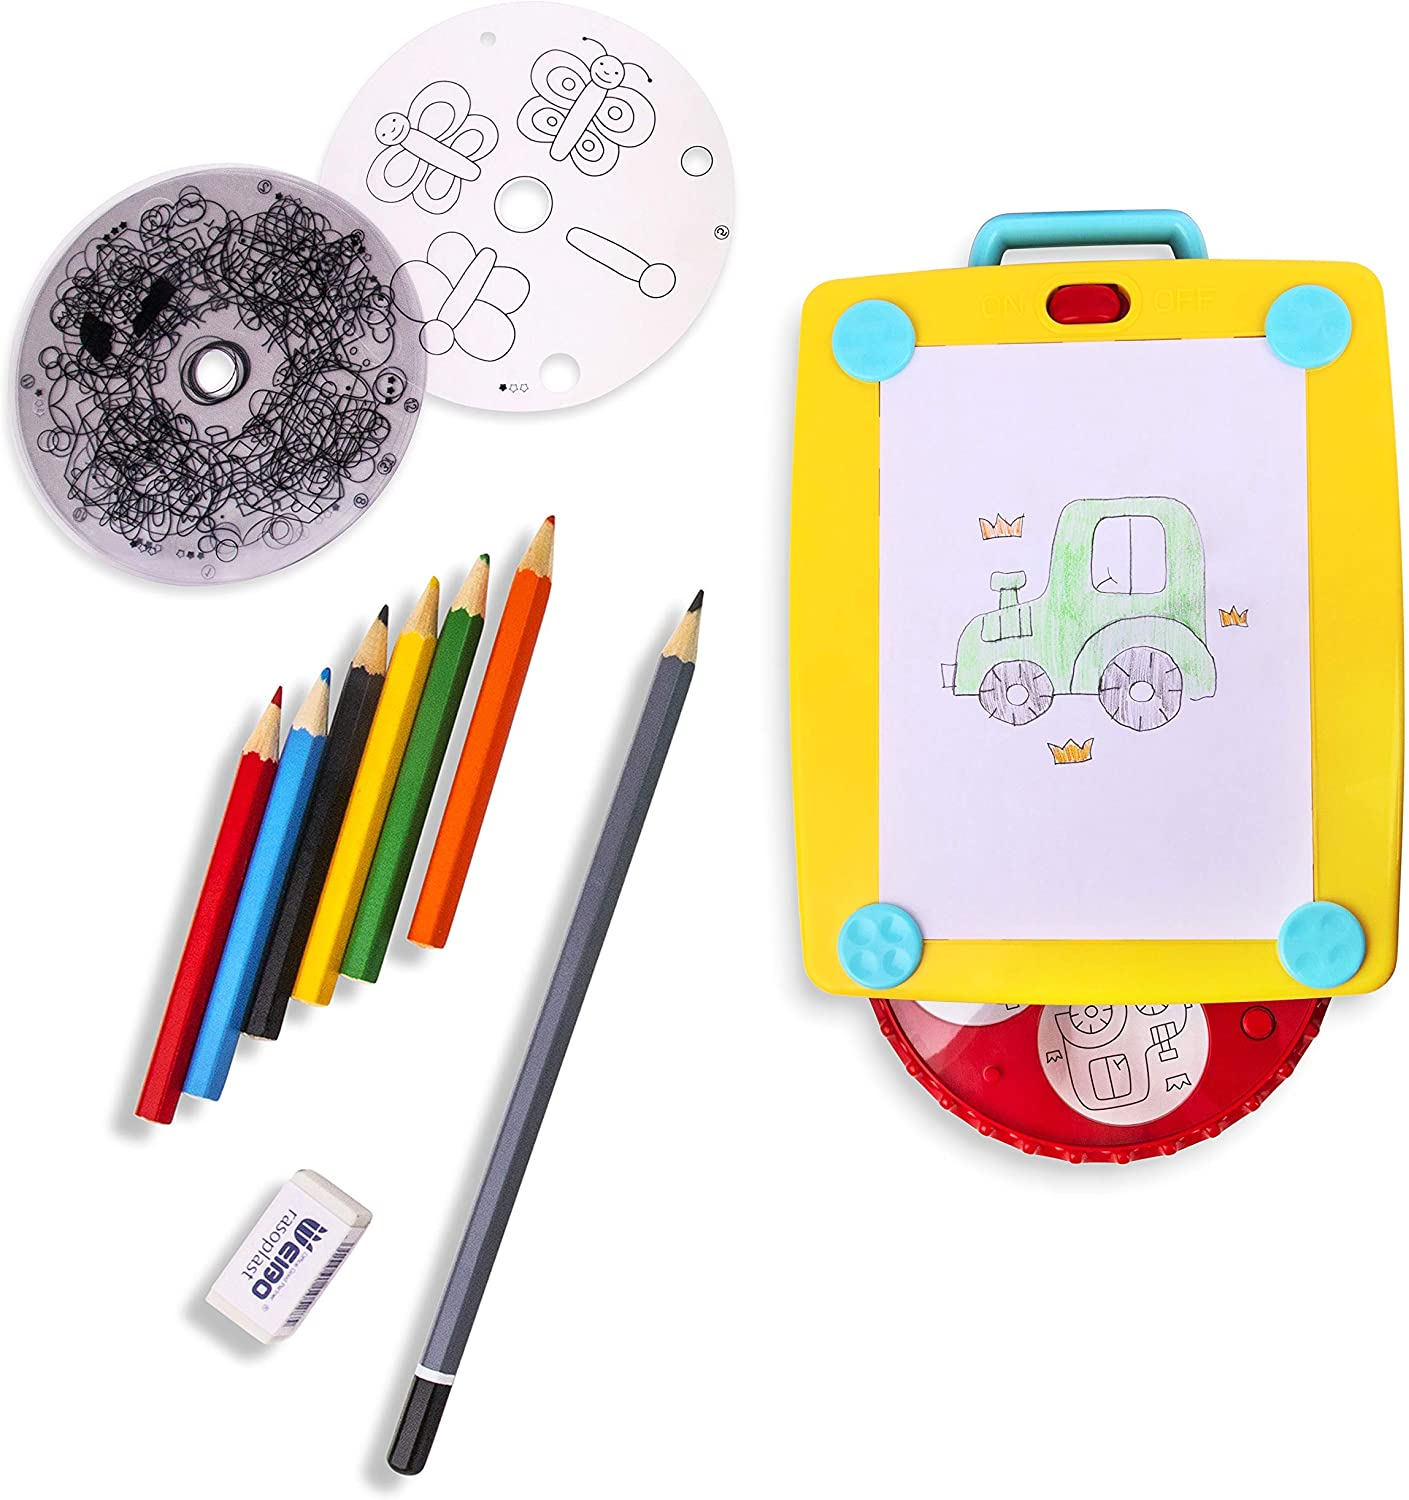 Coloring Pad for Kids of All Ages Playkidiz Colorate Light Up Tracing Tablet